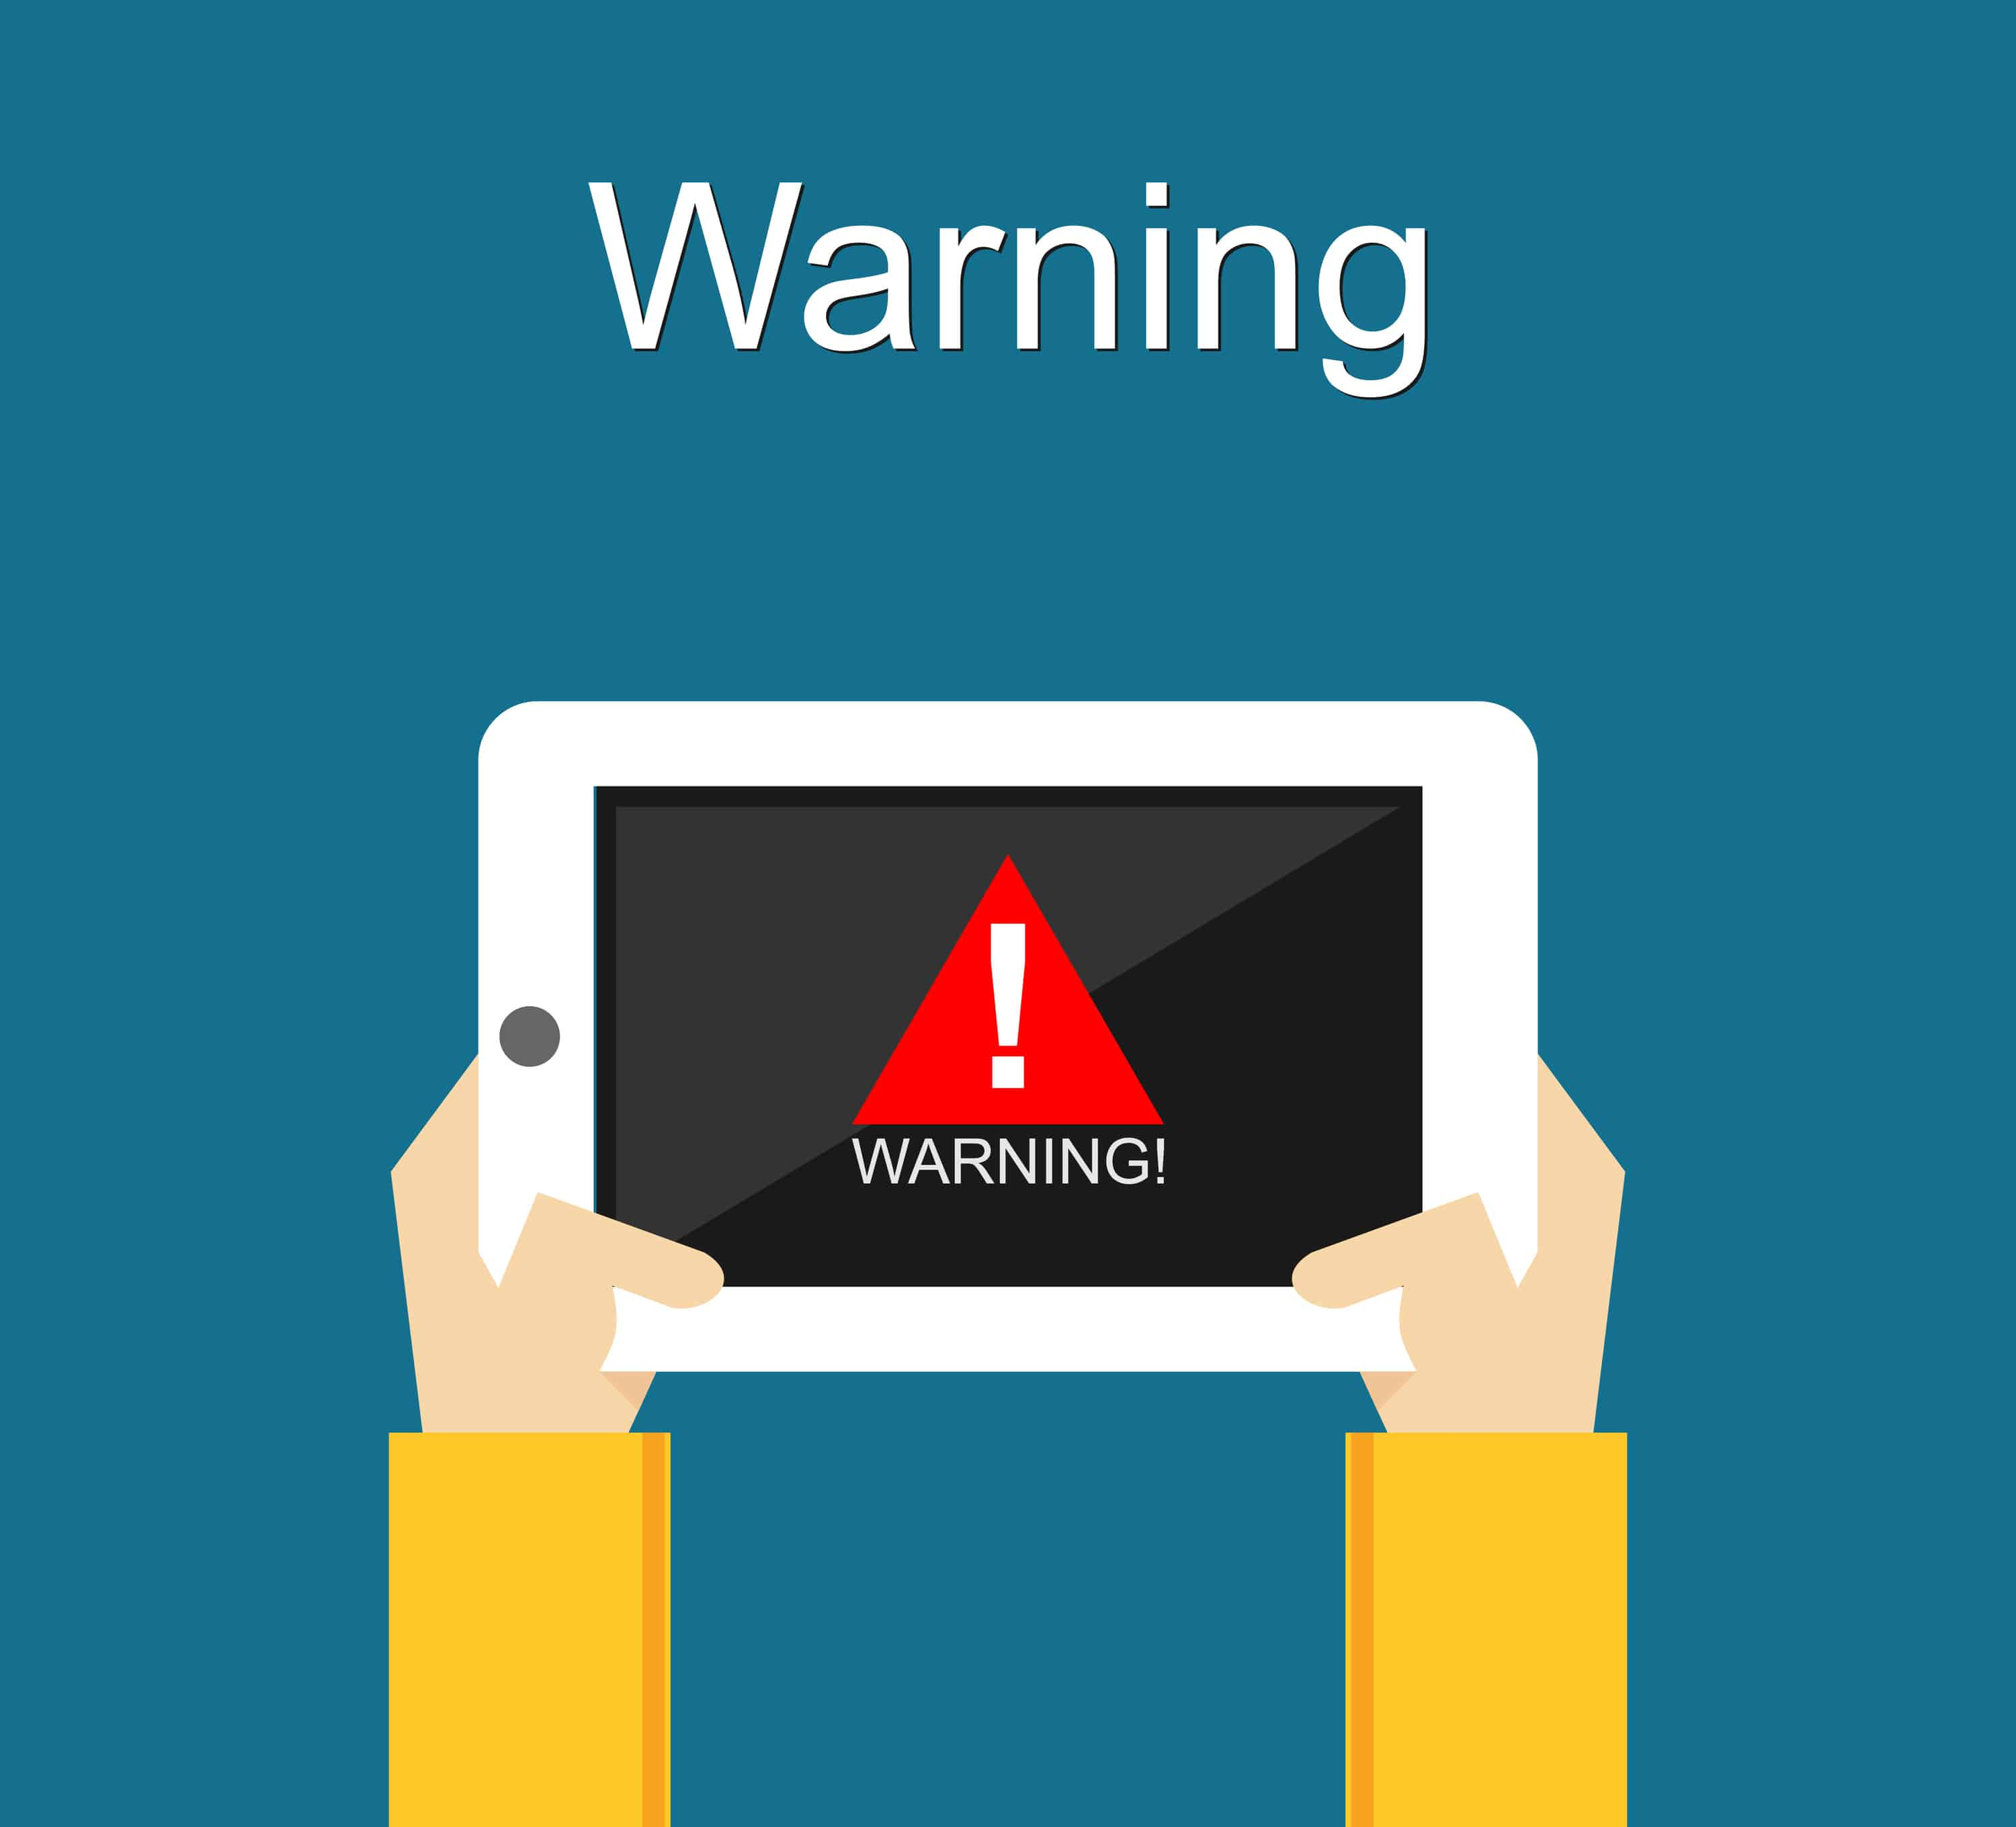 Drawing of hands holding ipad with warning sign to illustrate ultram warnings